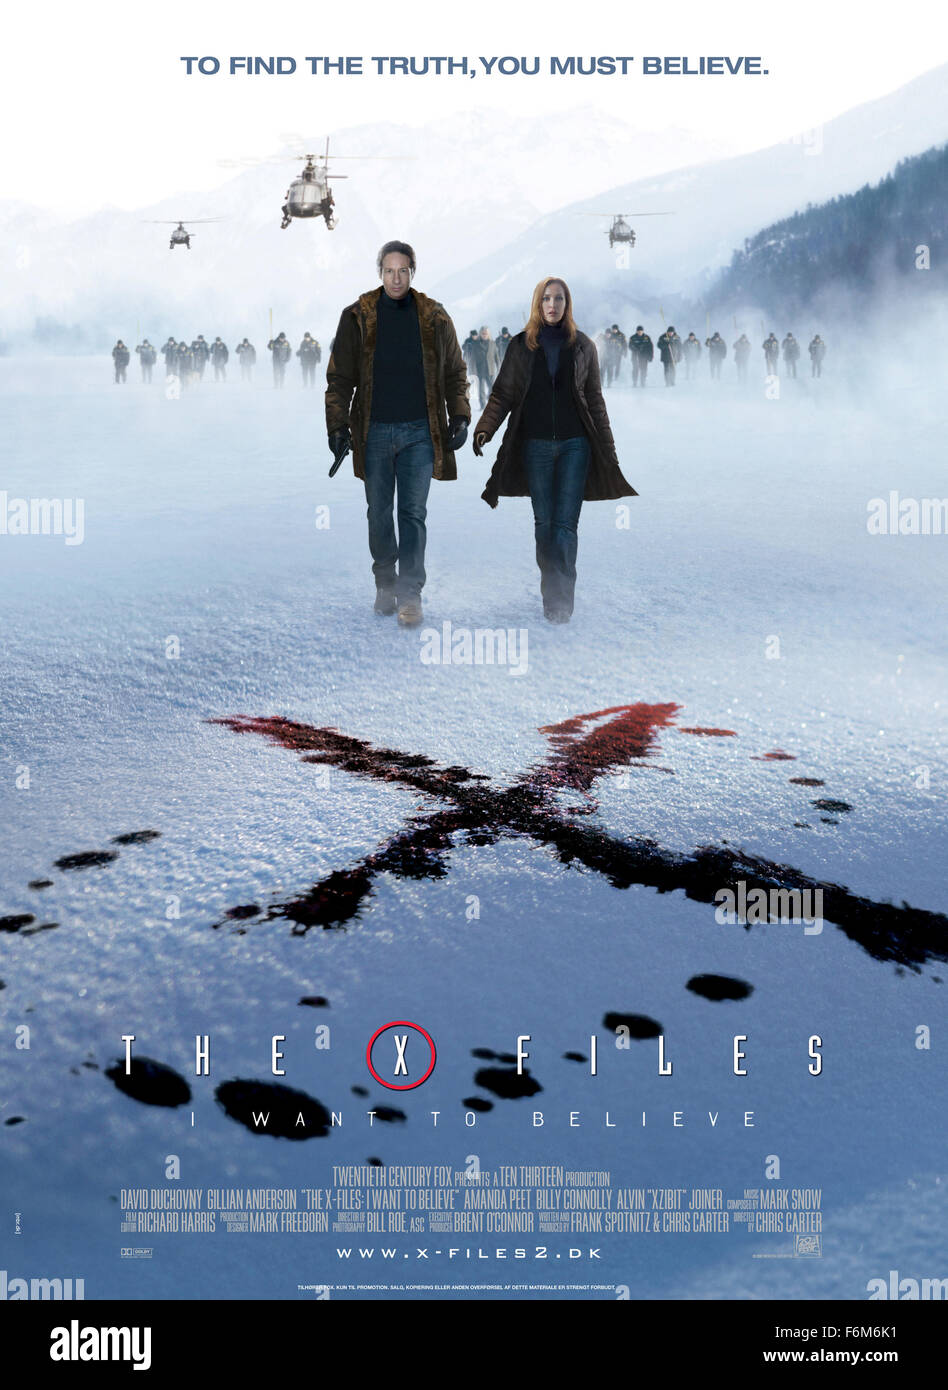 RELEASE DATE: 25 July 2008. MOVIE TITLE: The X Files: I Want to Believe. STUDIO: Twentieth Century-Fox Film. PLOT: - Stock Image